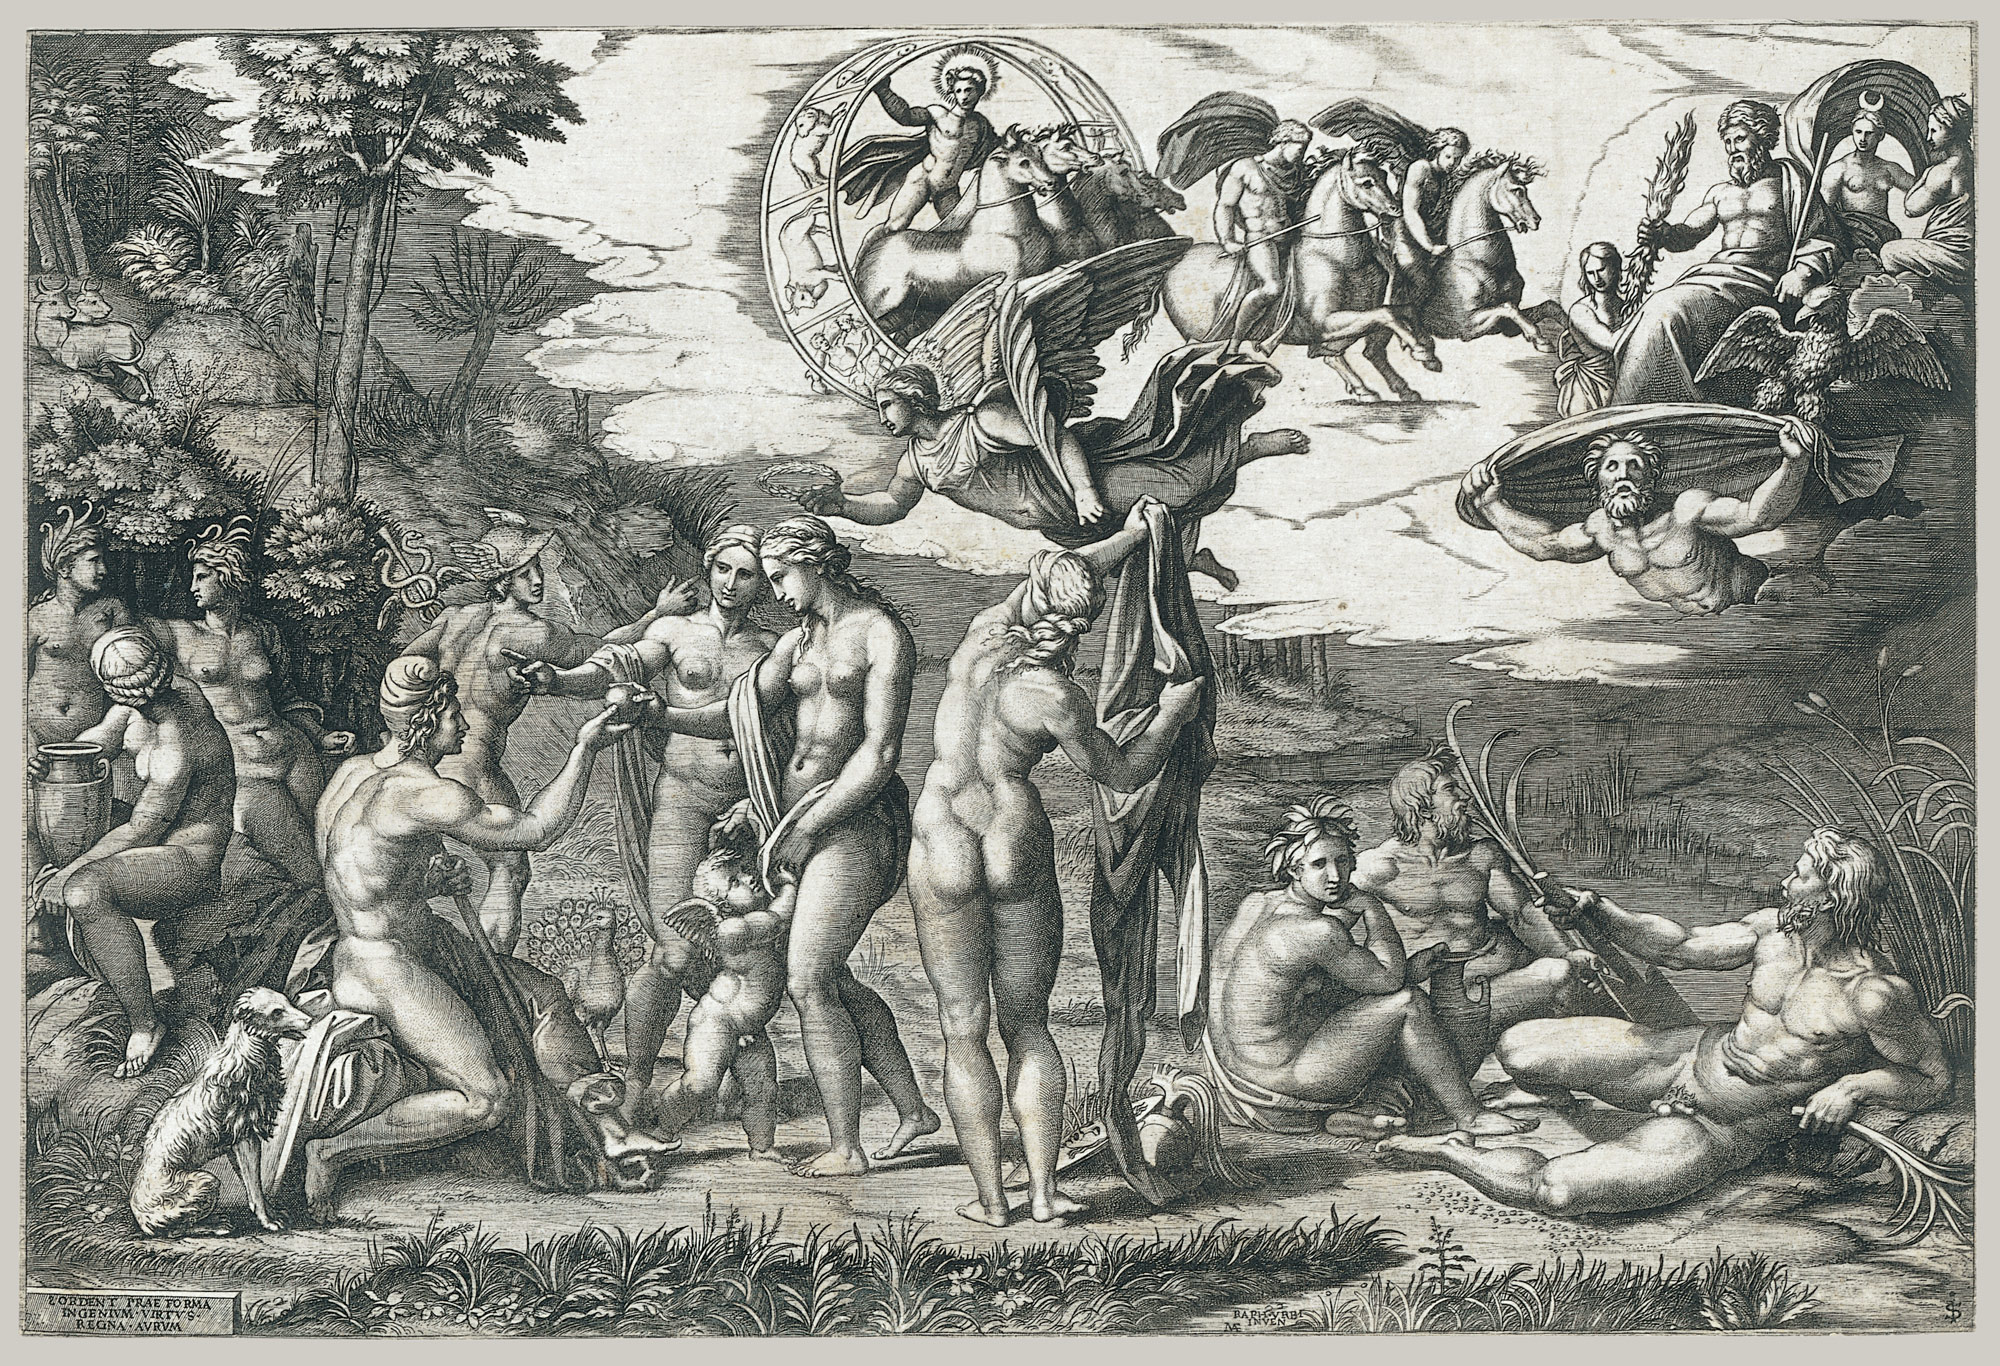 The Judgment of Paris; he is sitting at left with Venus, Juno and Pallas Athena, a winged victory above; in the upper section the Sun in his chariot preceeded by Castor and Pollux on horseback; at lower right two river gods and a naiad above whom Jupiter, an eagle, Ganymede, Diana and another Goddess